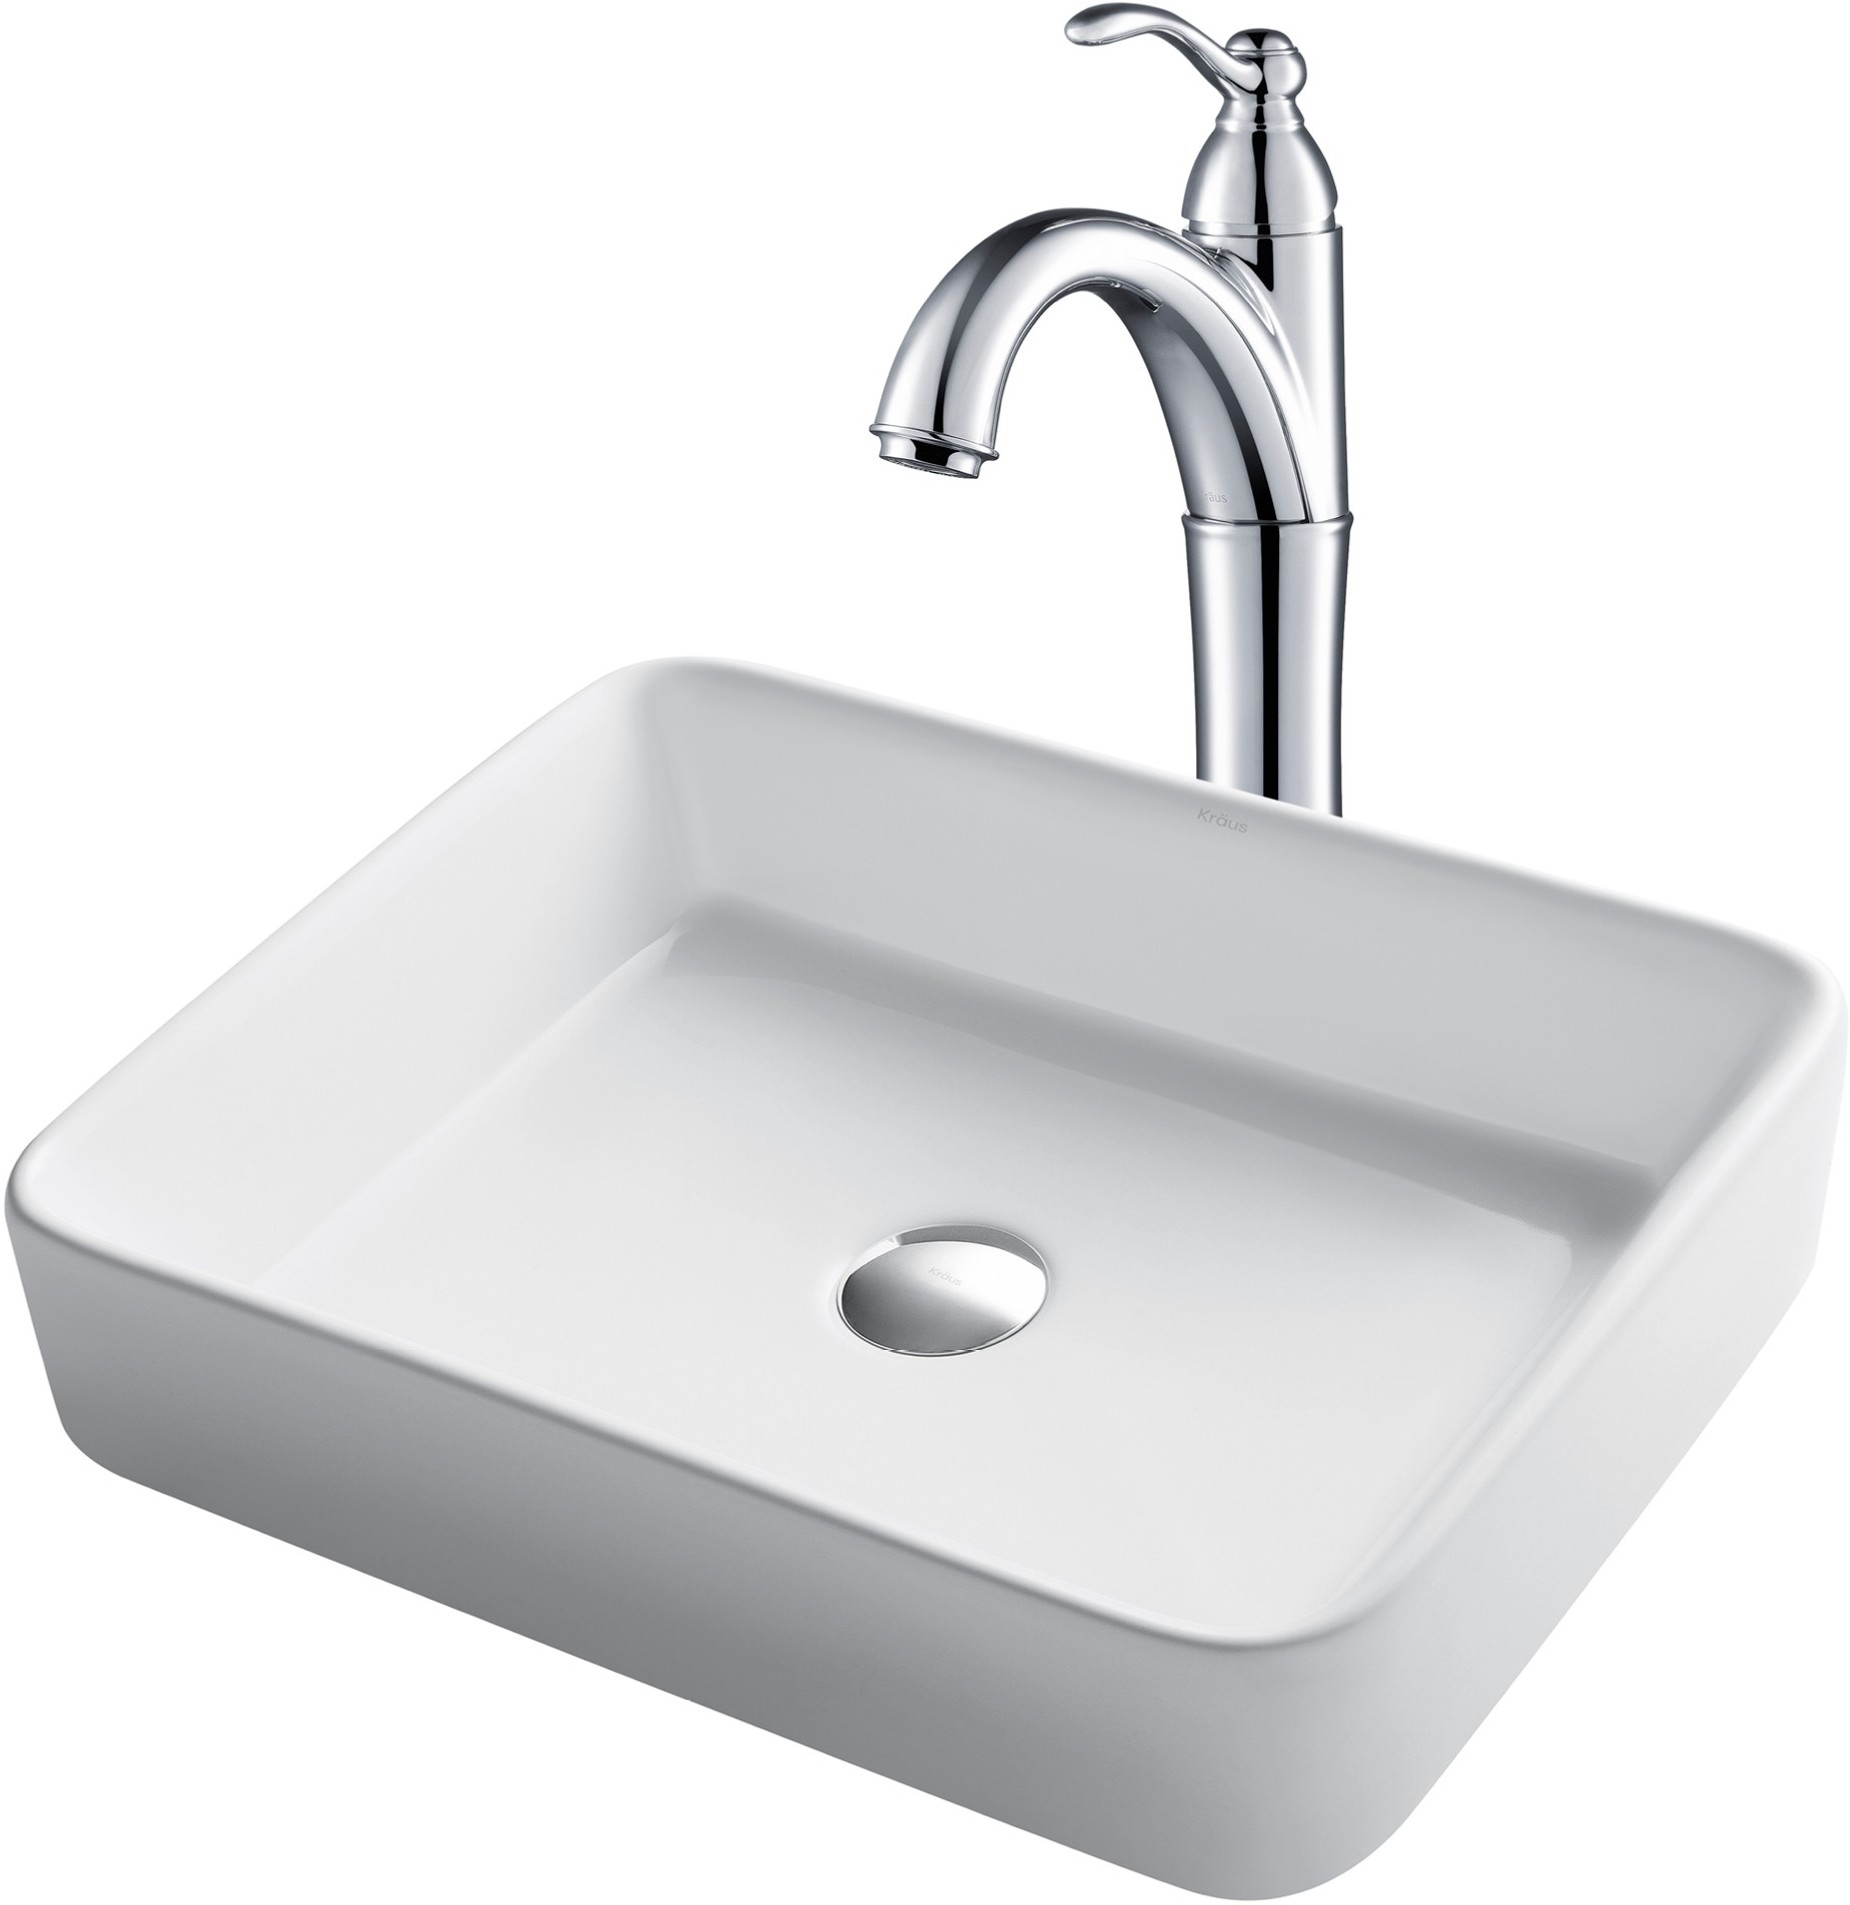 Image of Kraus Ceramic Sink & Faucet Combination CKCV1211005CH